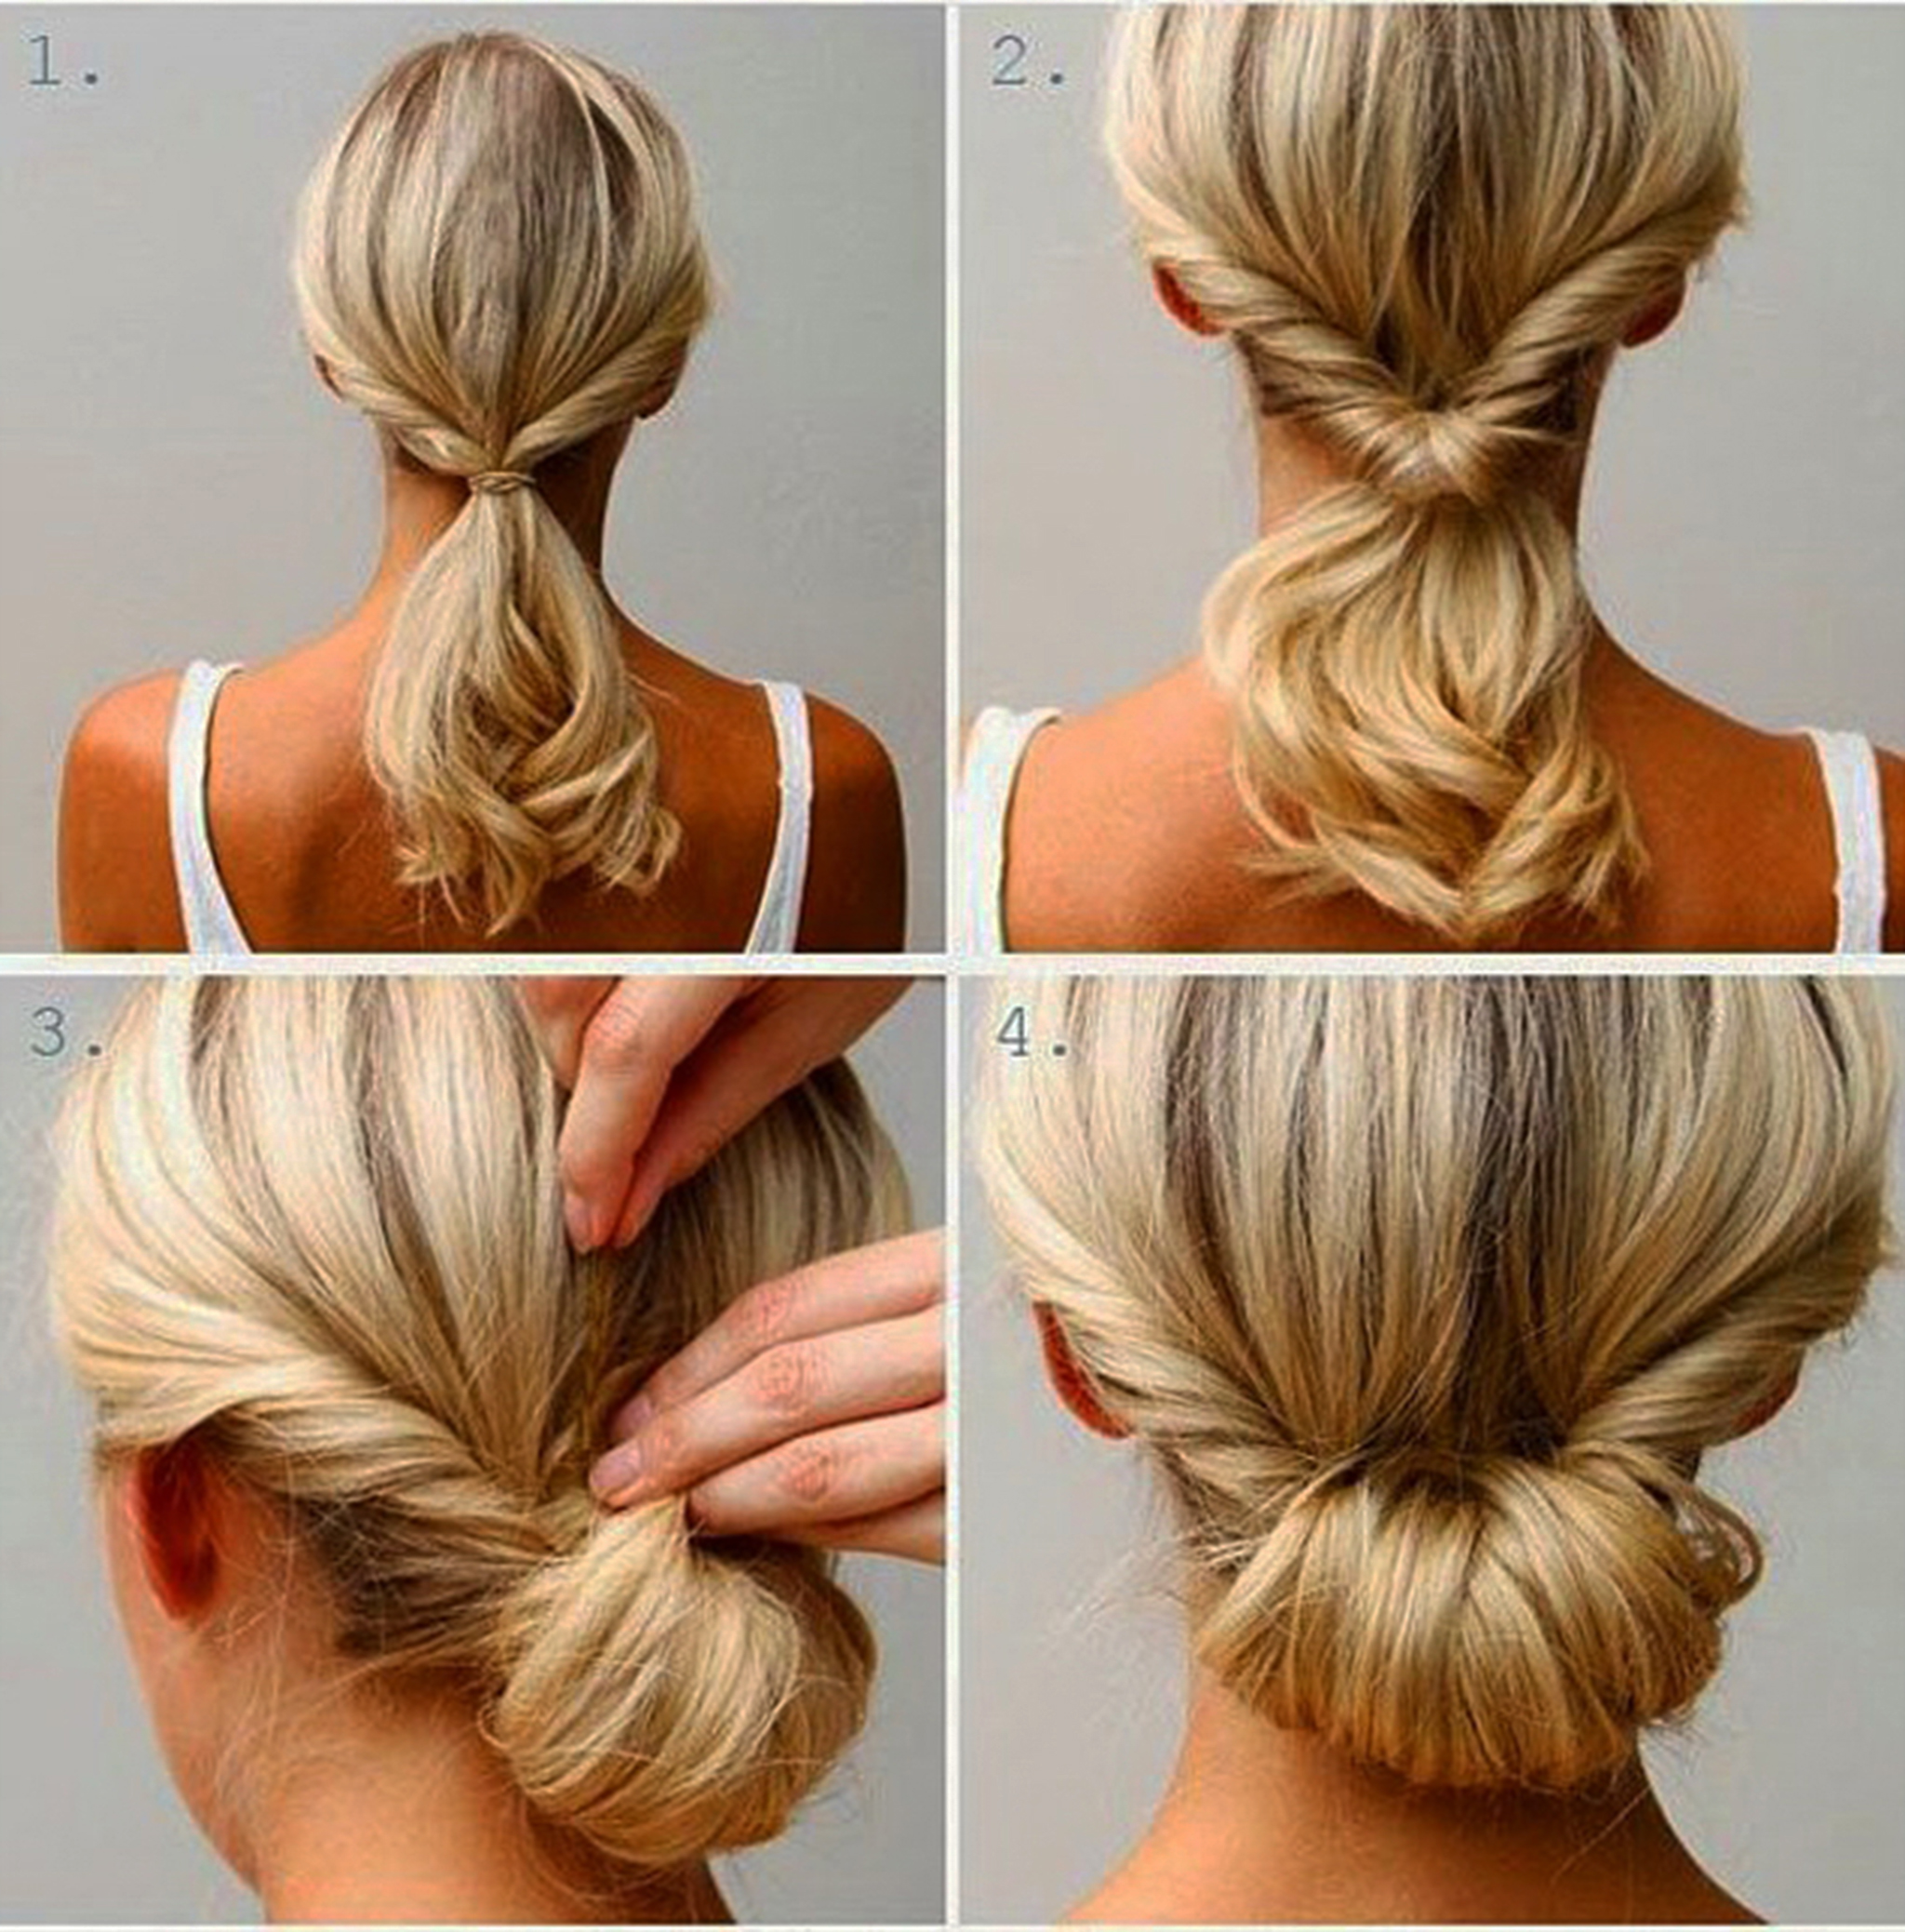 From Classy to Cute: Amazing Hairstyles for Long Hair